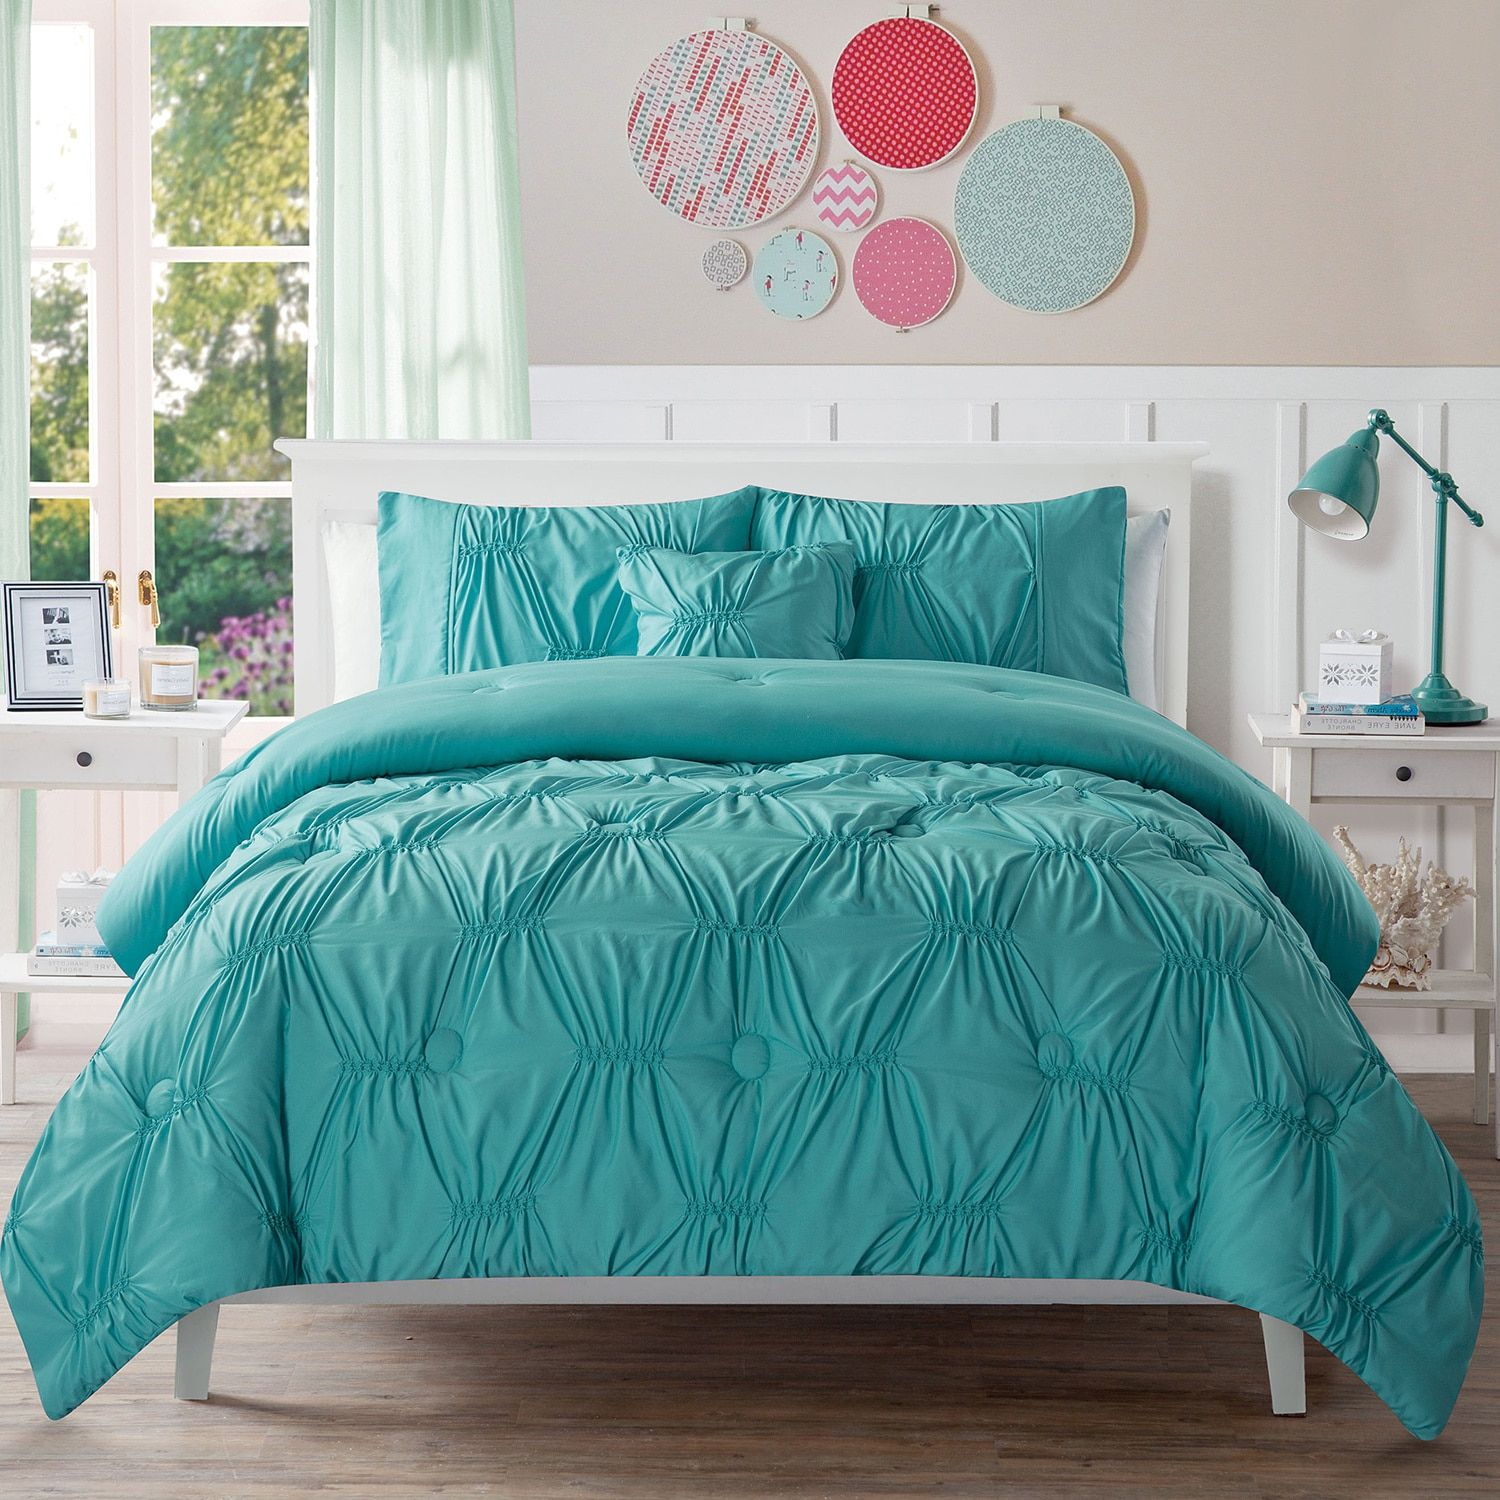 bed overstock com furniture set less and decorations sets gray chevron remodel inside comforter delightful pink pertaining grey to bedding for